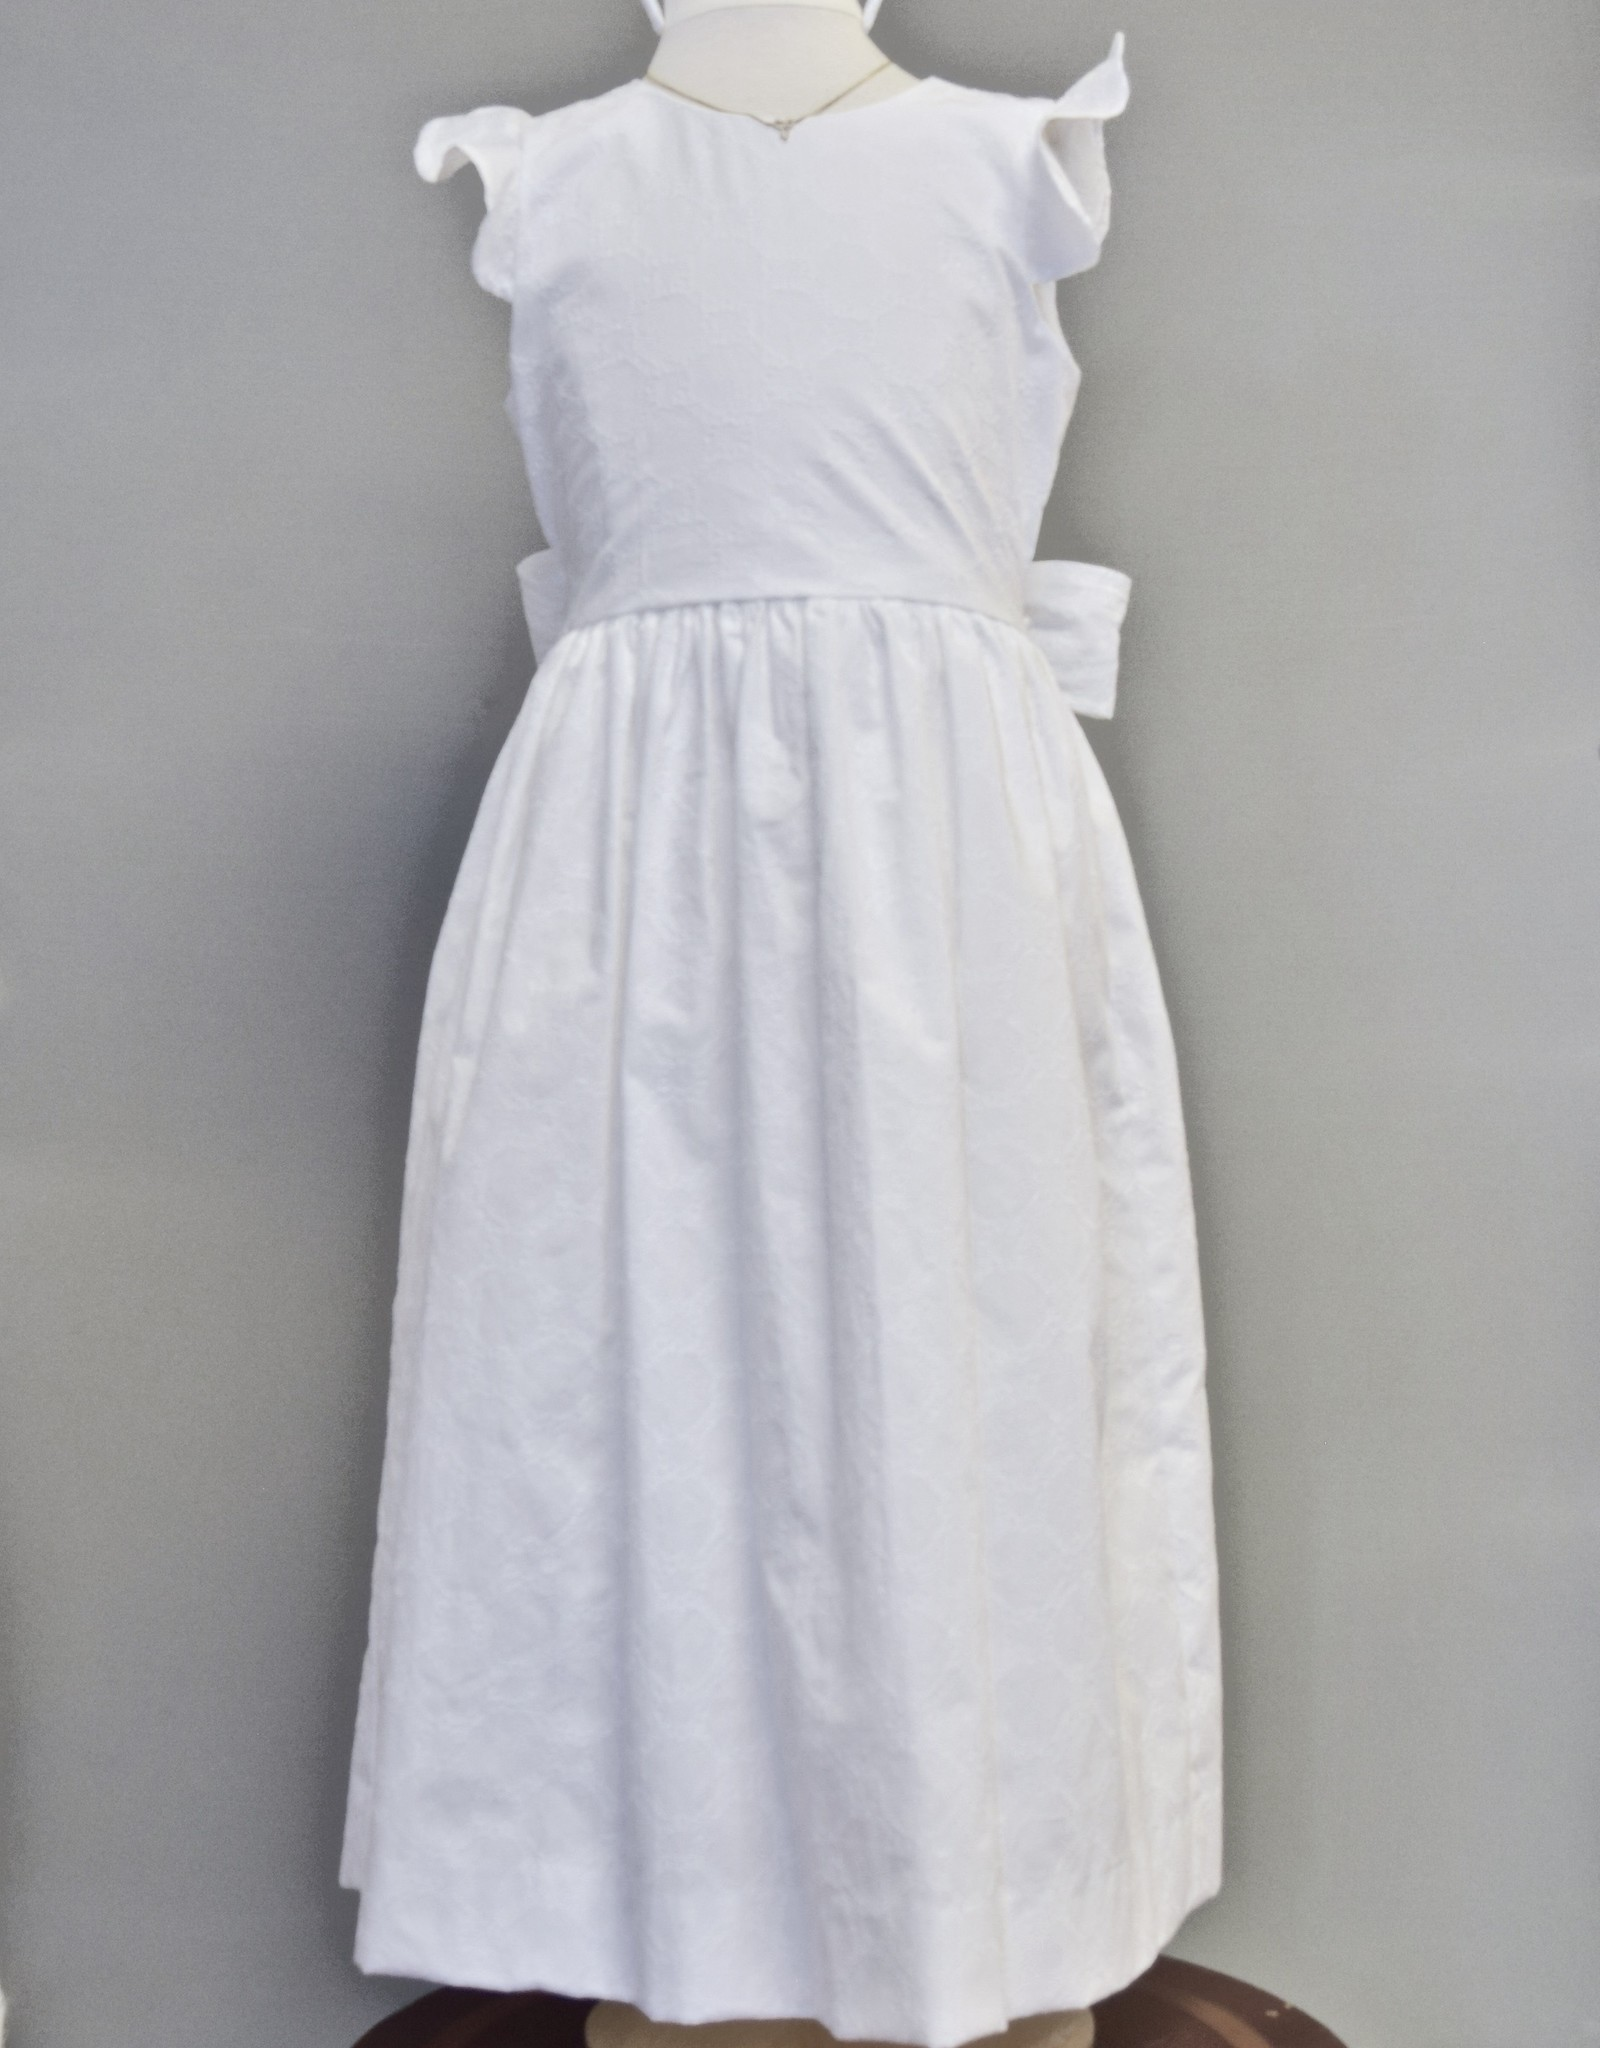 Maggie Breen White Circle Embroidered Dress